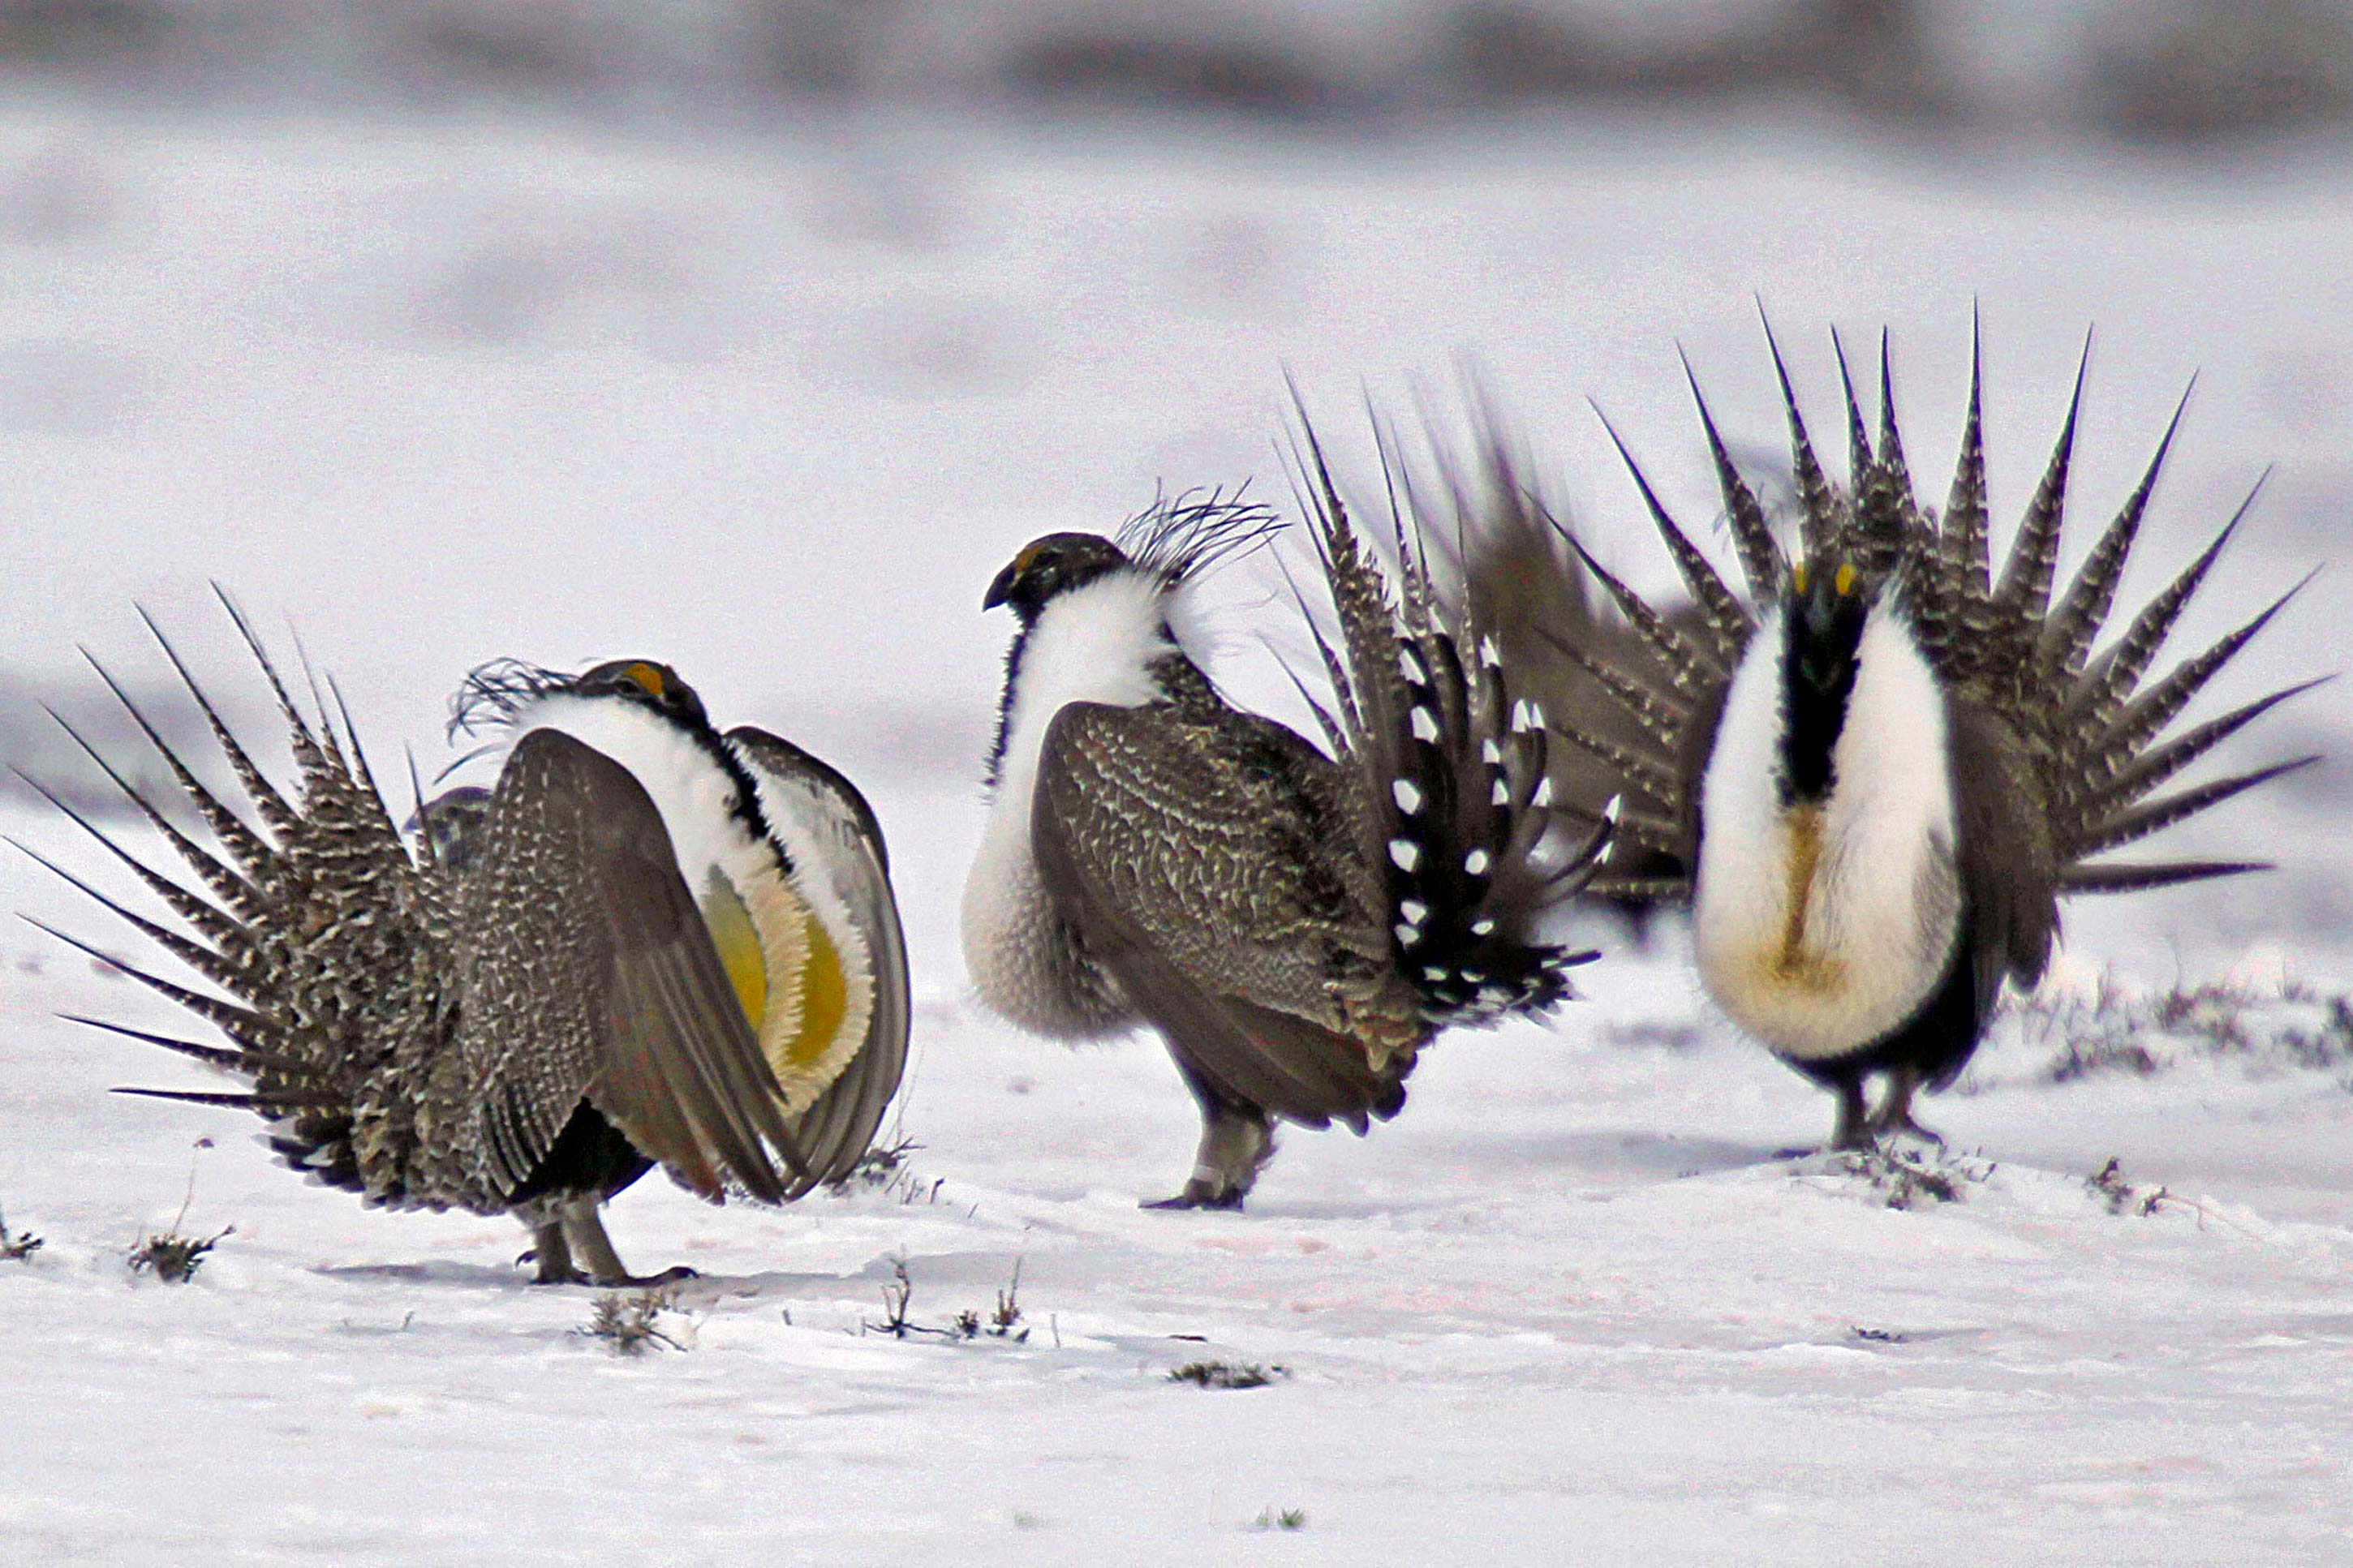 Photo: Greater Sage Grouse | Walden, Colo - AP